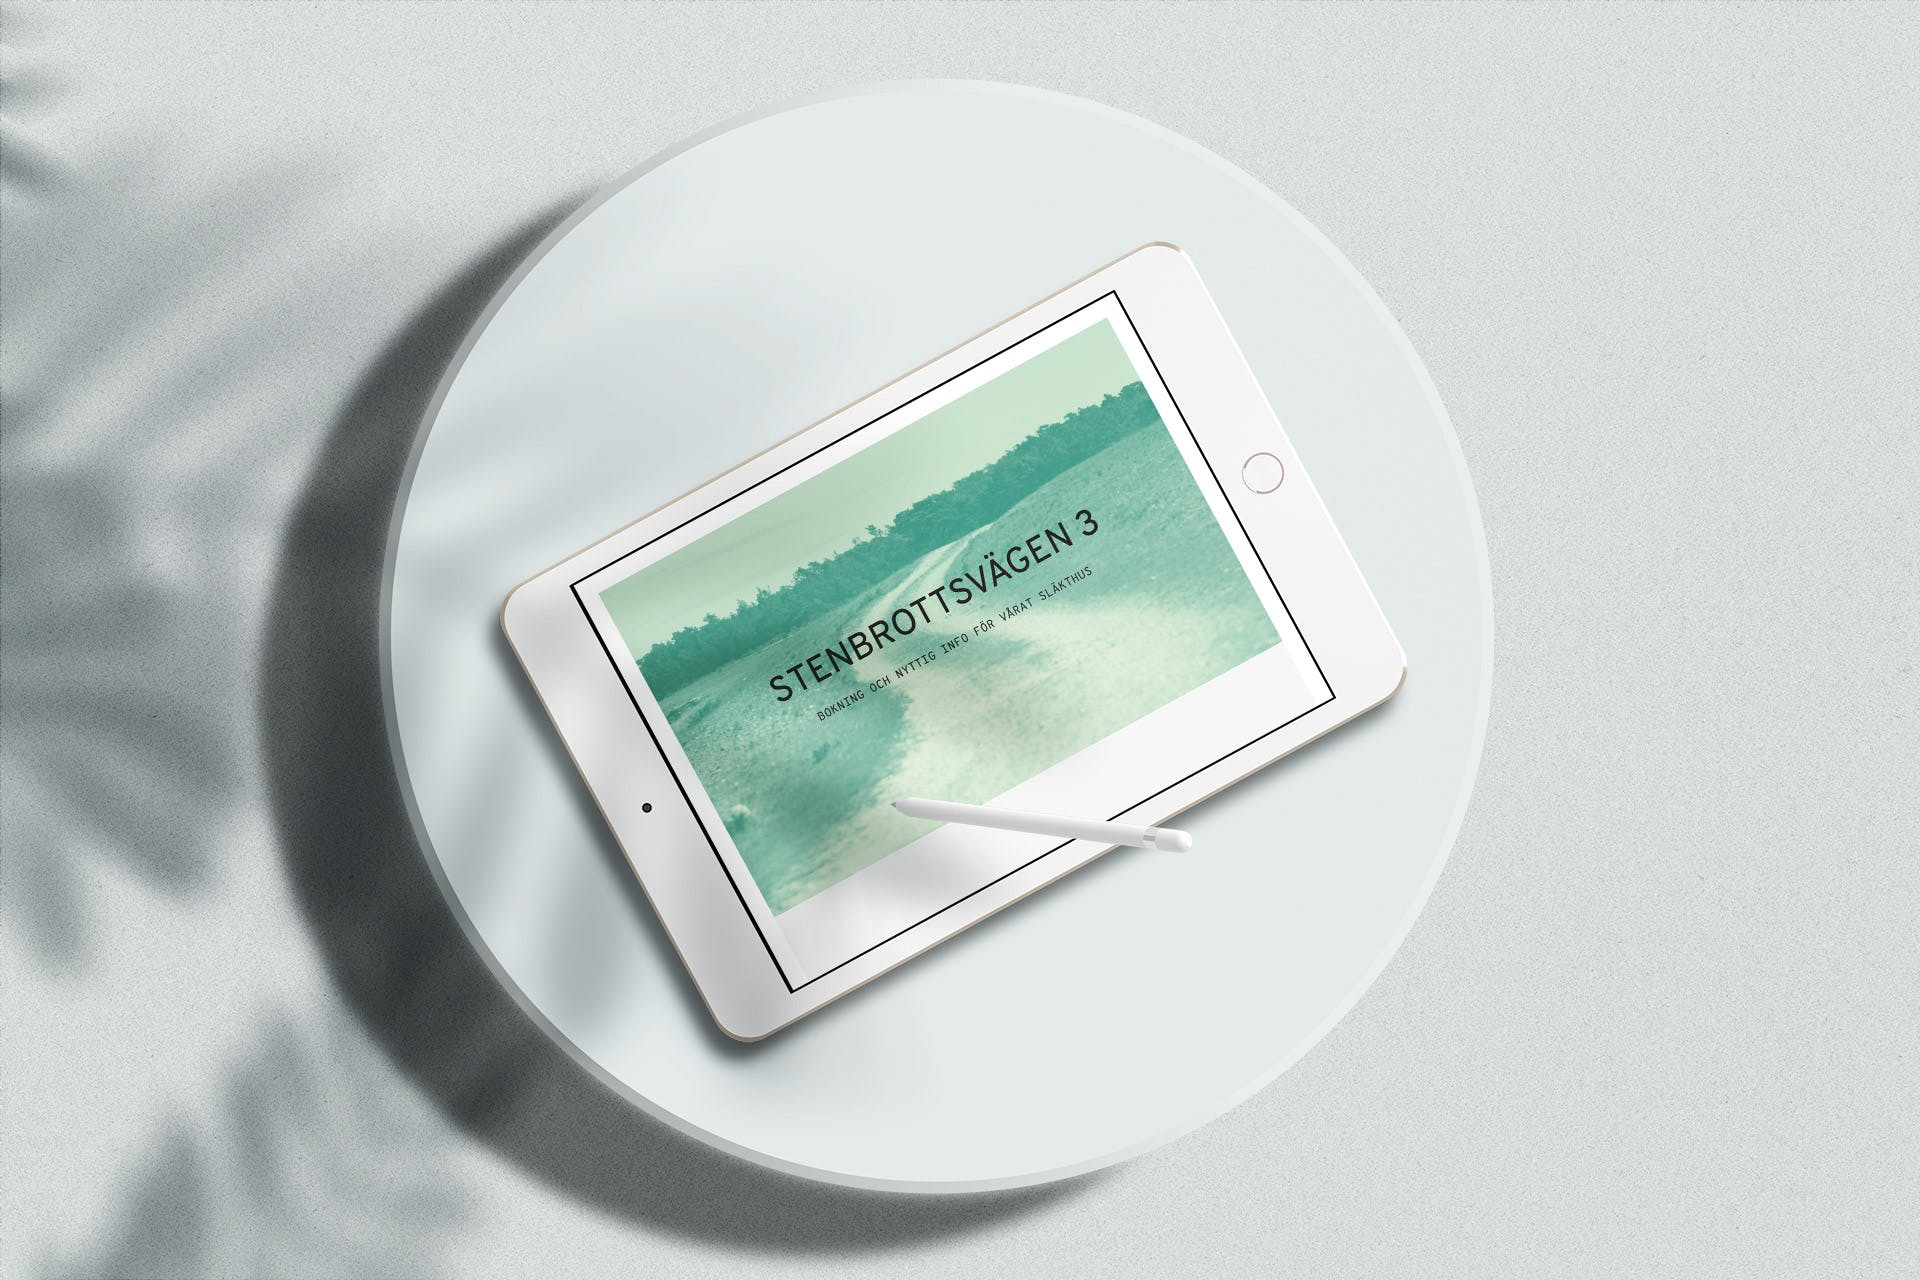 Close up of an white iPad showing the main view of the Stenbrottsvägen website